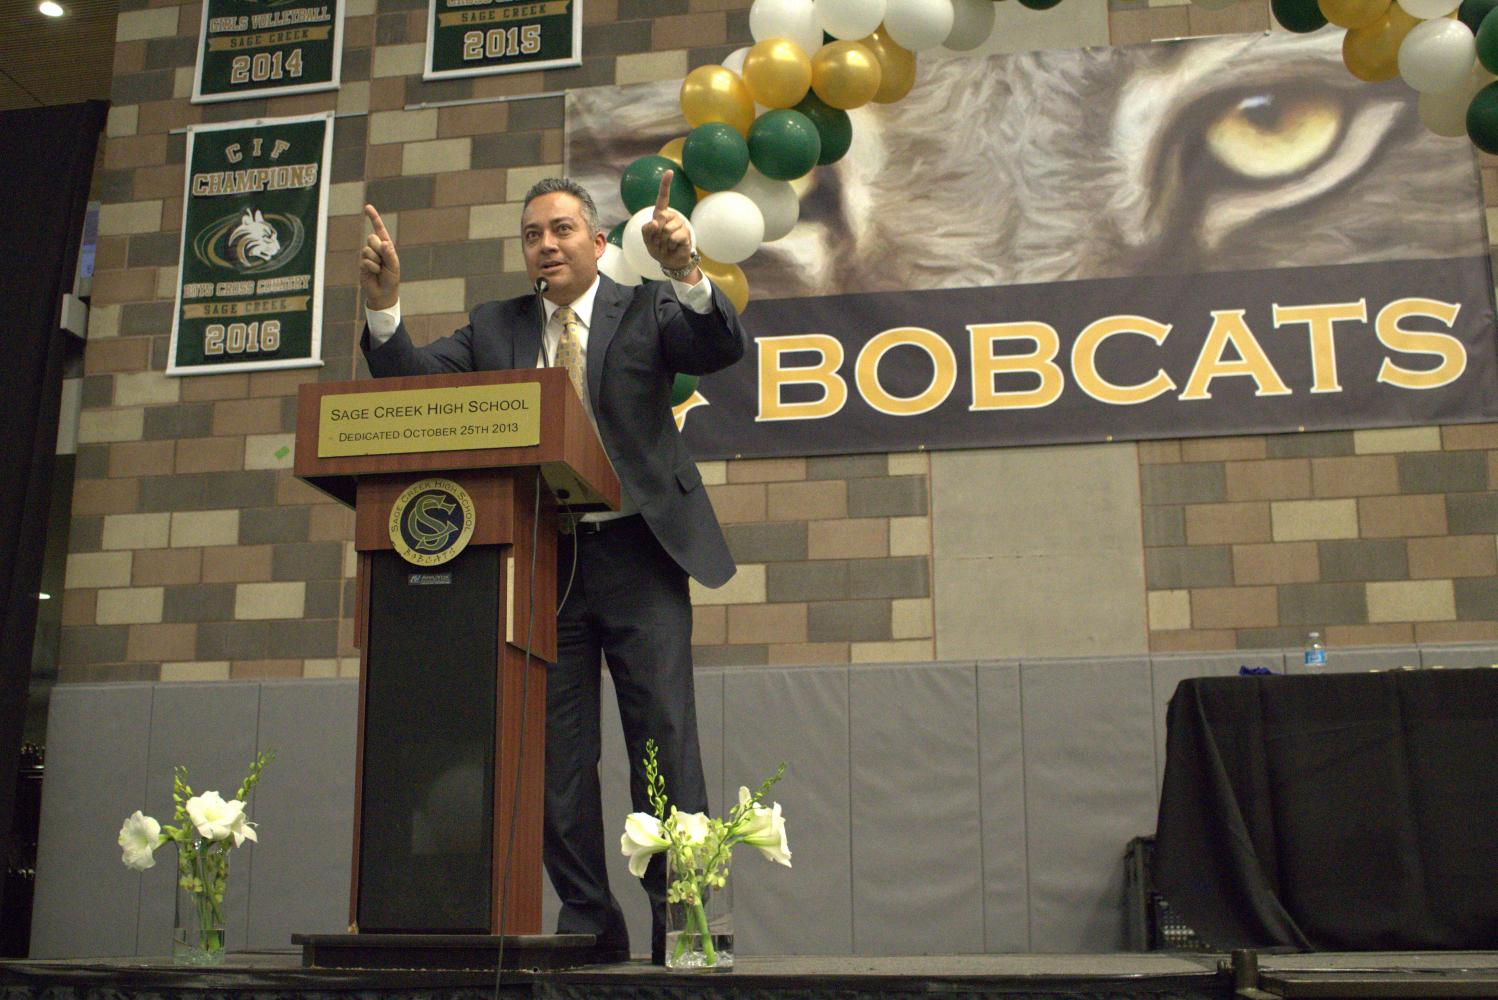 Principal Cesar Morales greets the festive crowd on senior awards night.